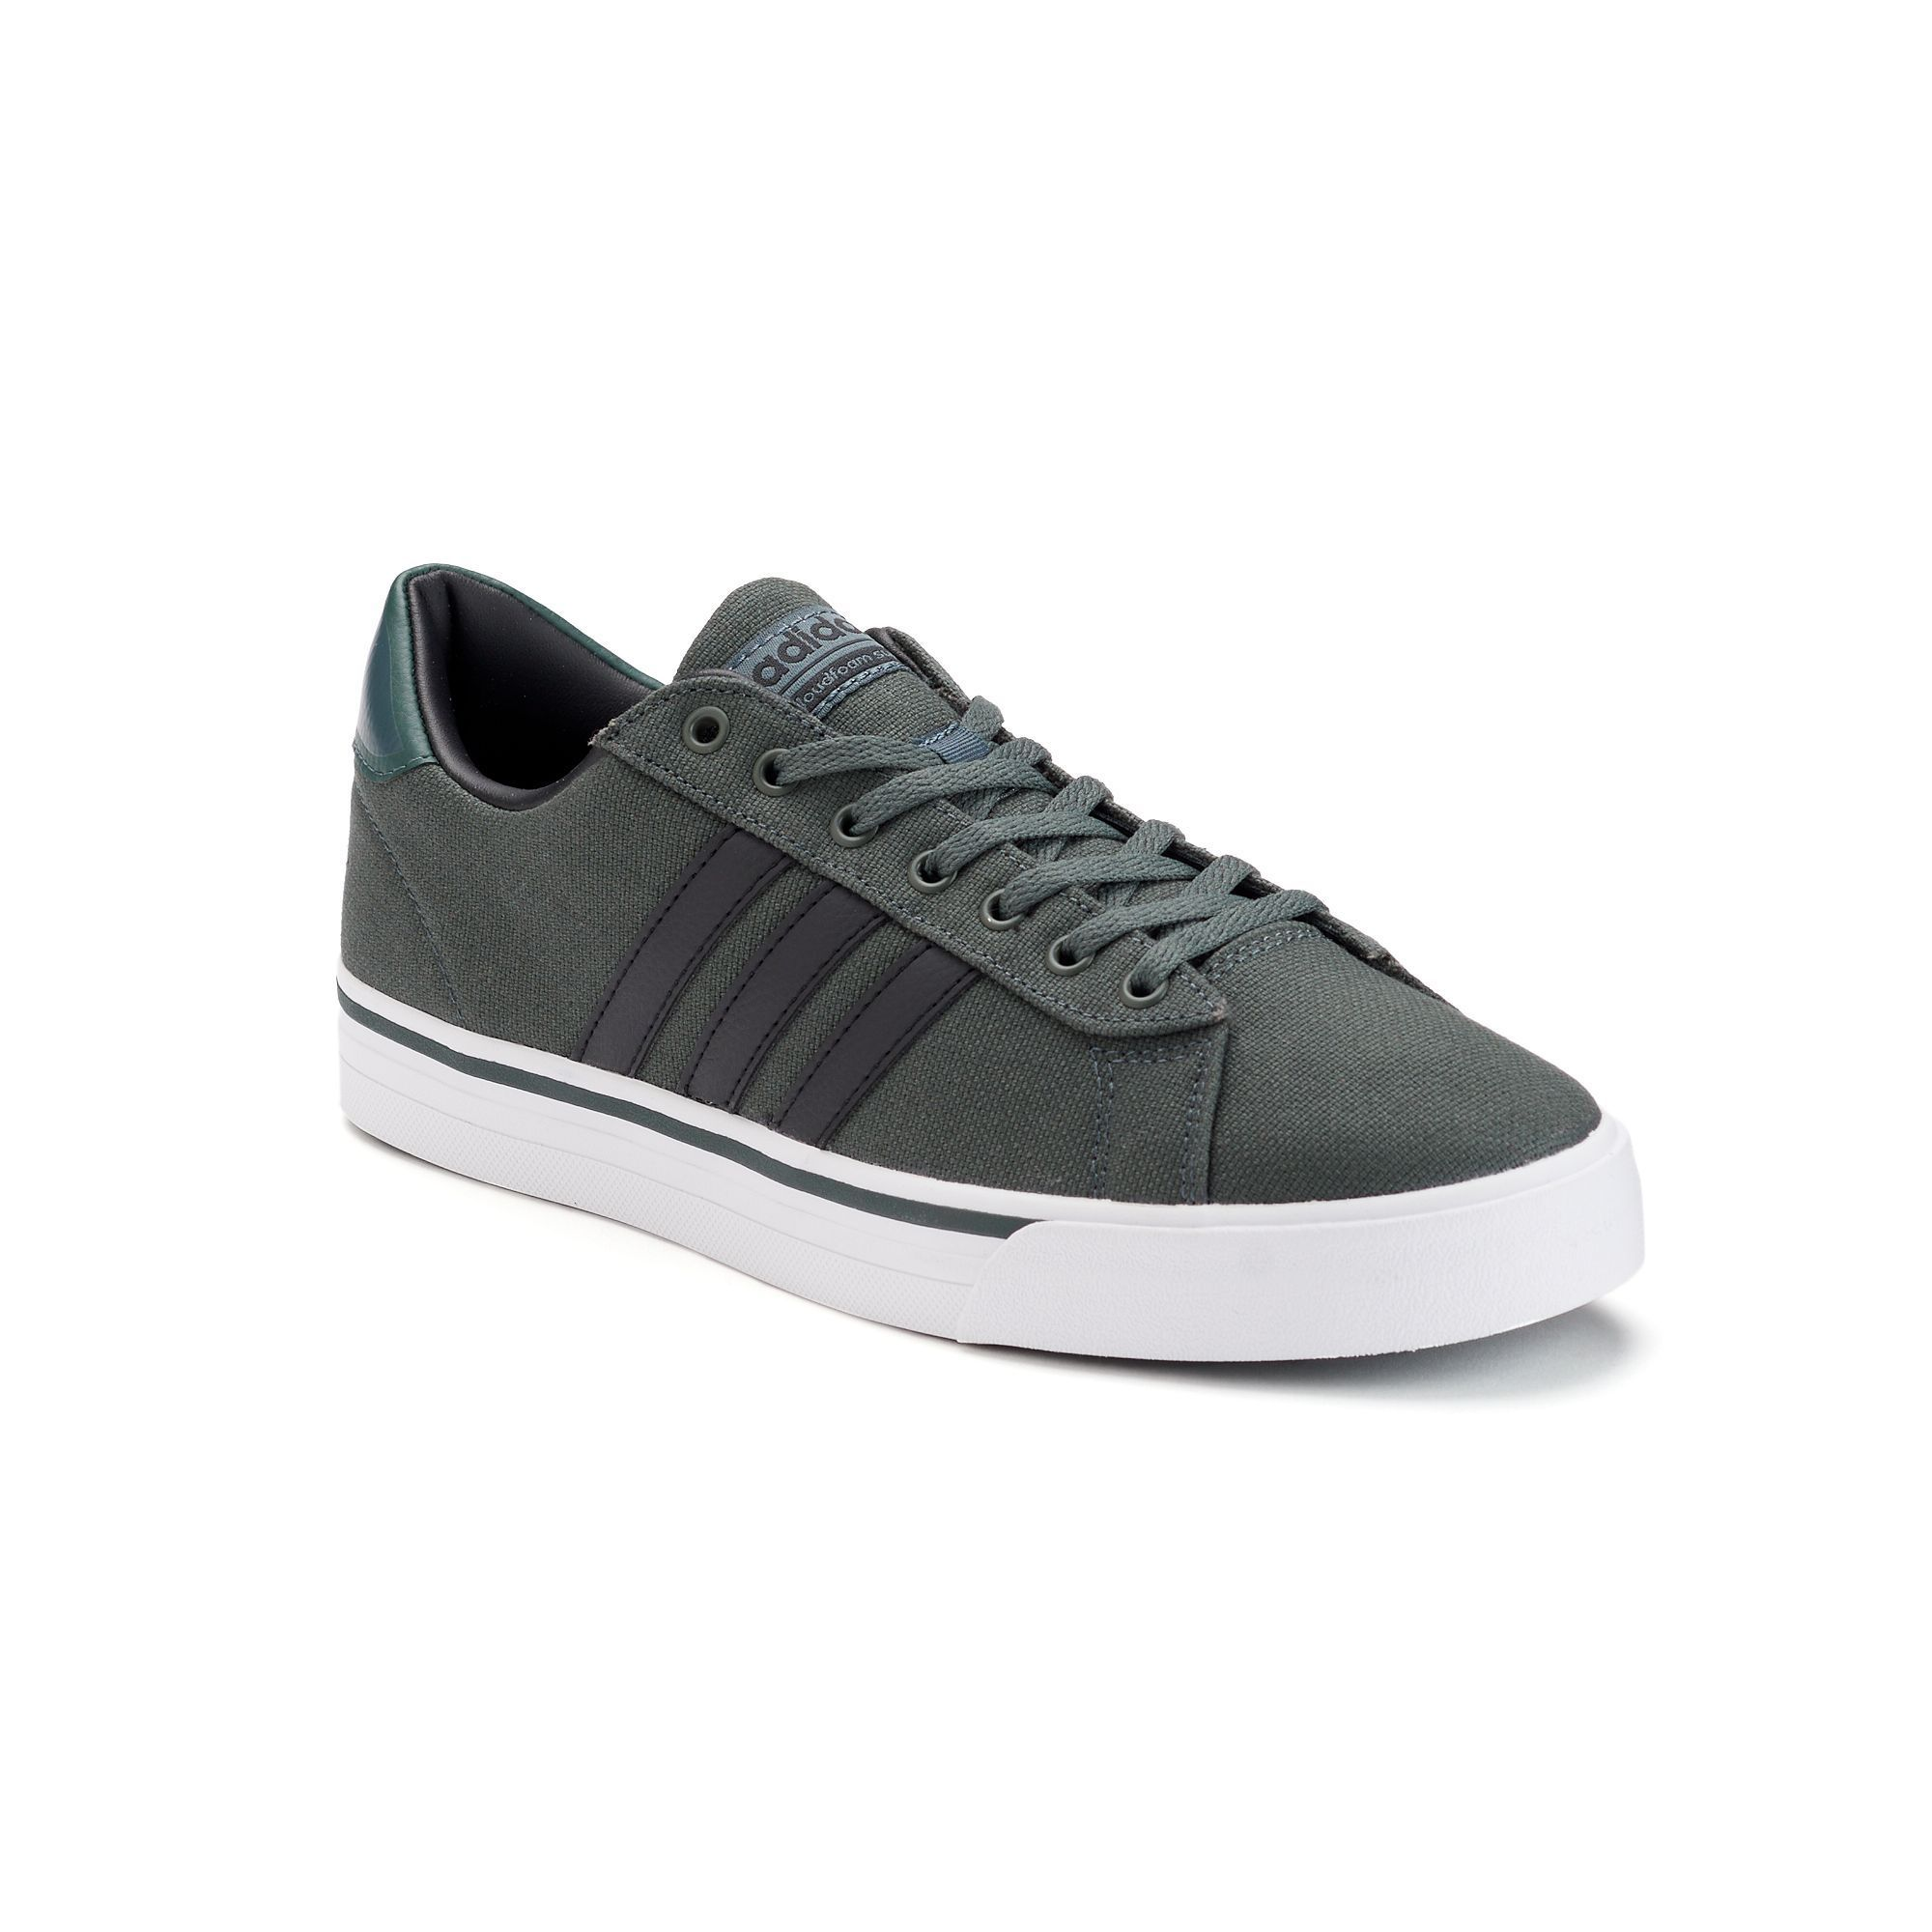 59d43a518c8 Adidas NEO Cloudfoam Super Daily Men s Shoes